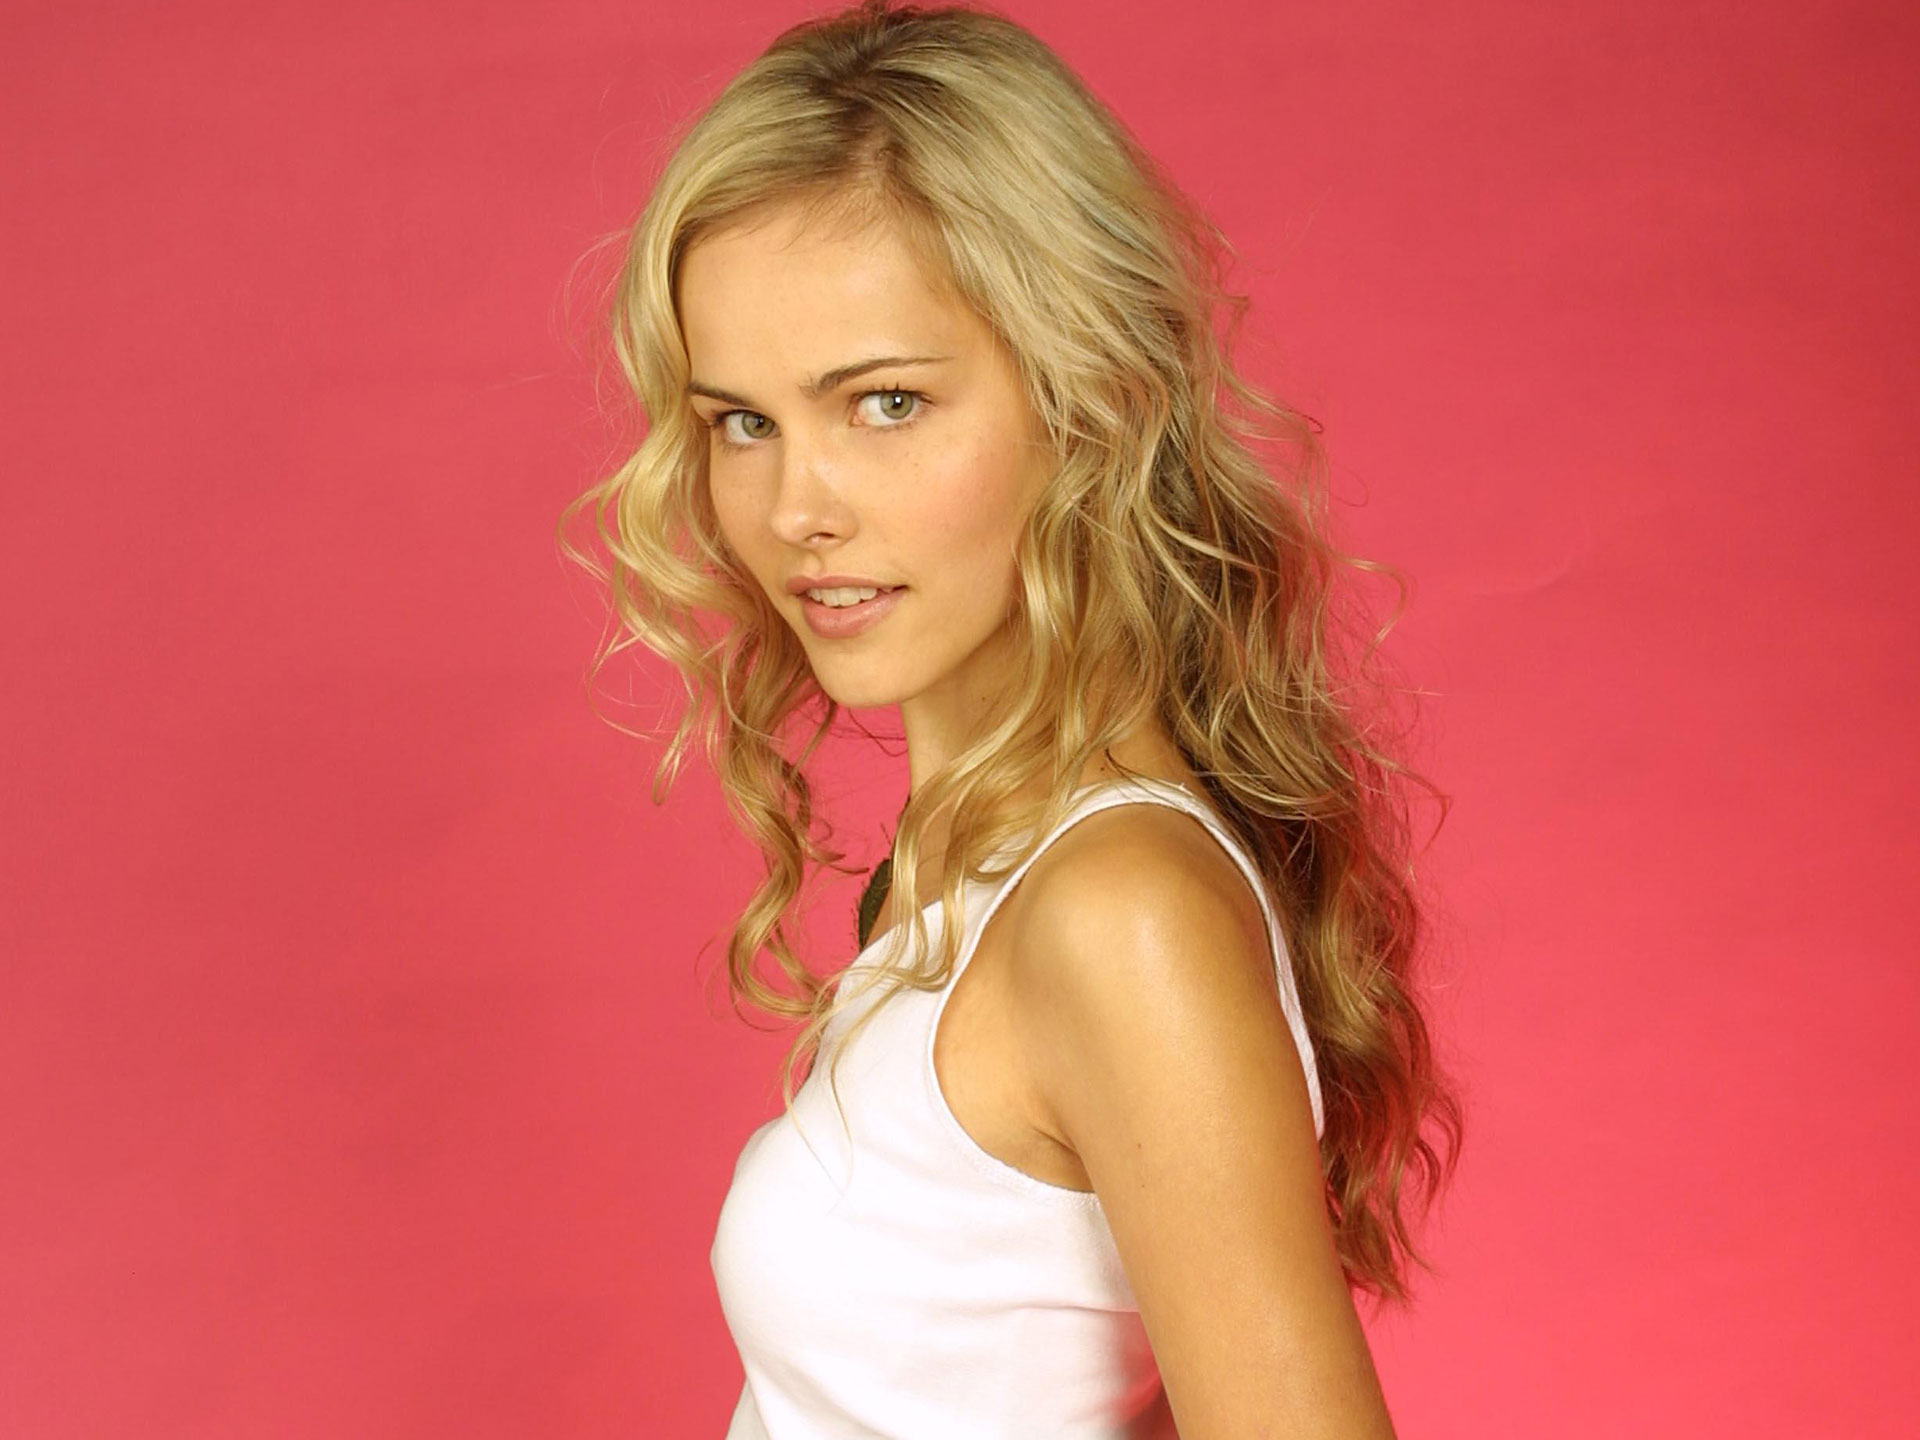 Transformers Girl Isabel Lucas wallpaper